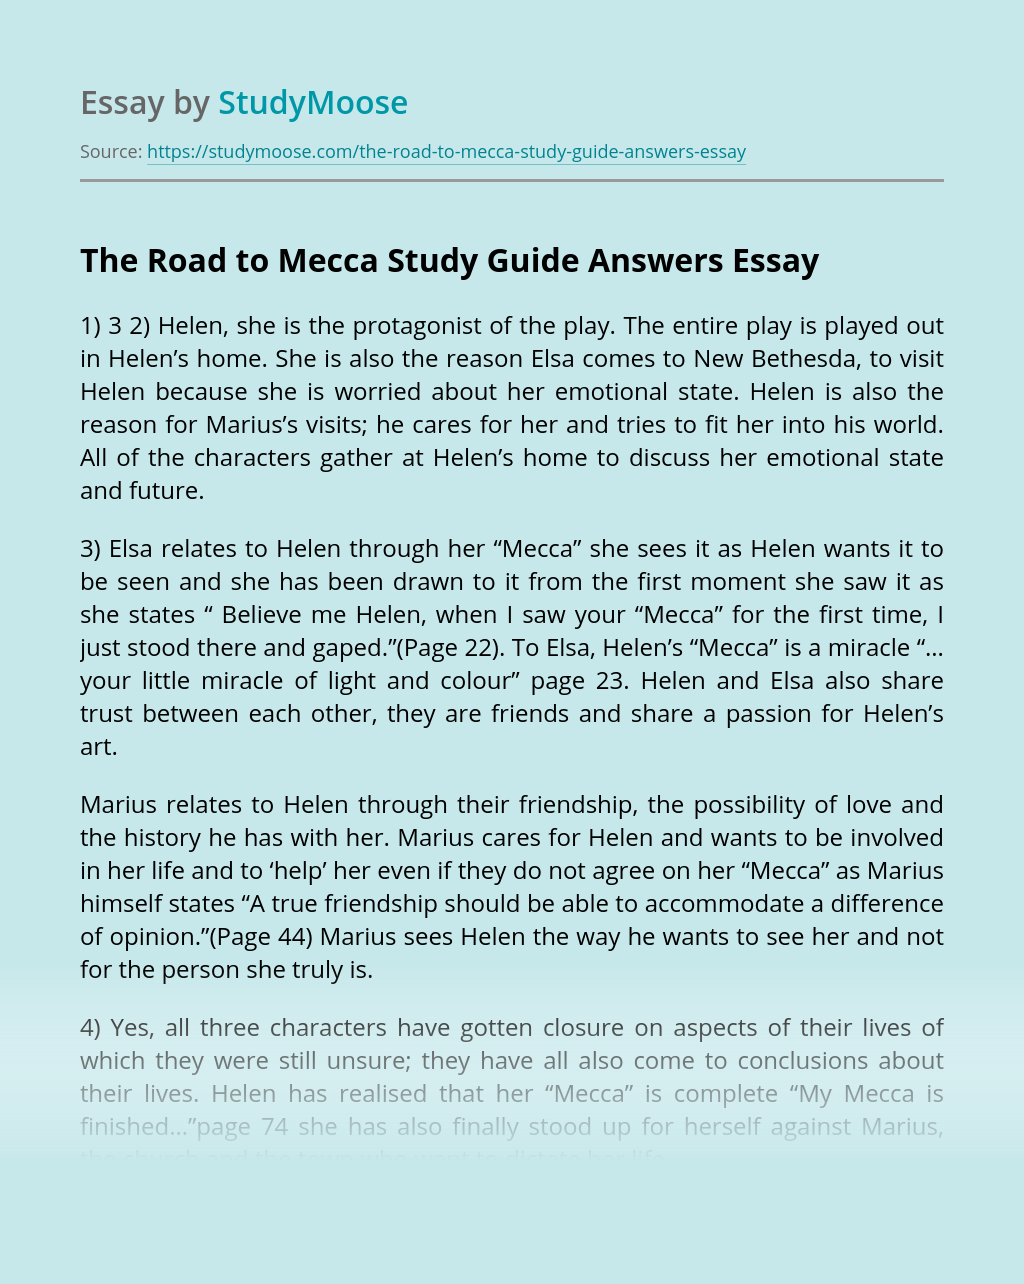 The Road to Mecca Study Guide Answers